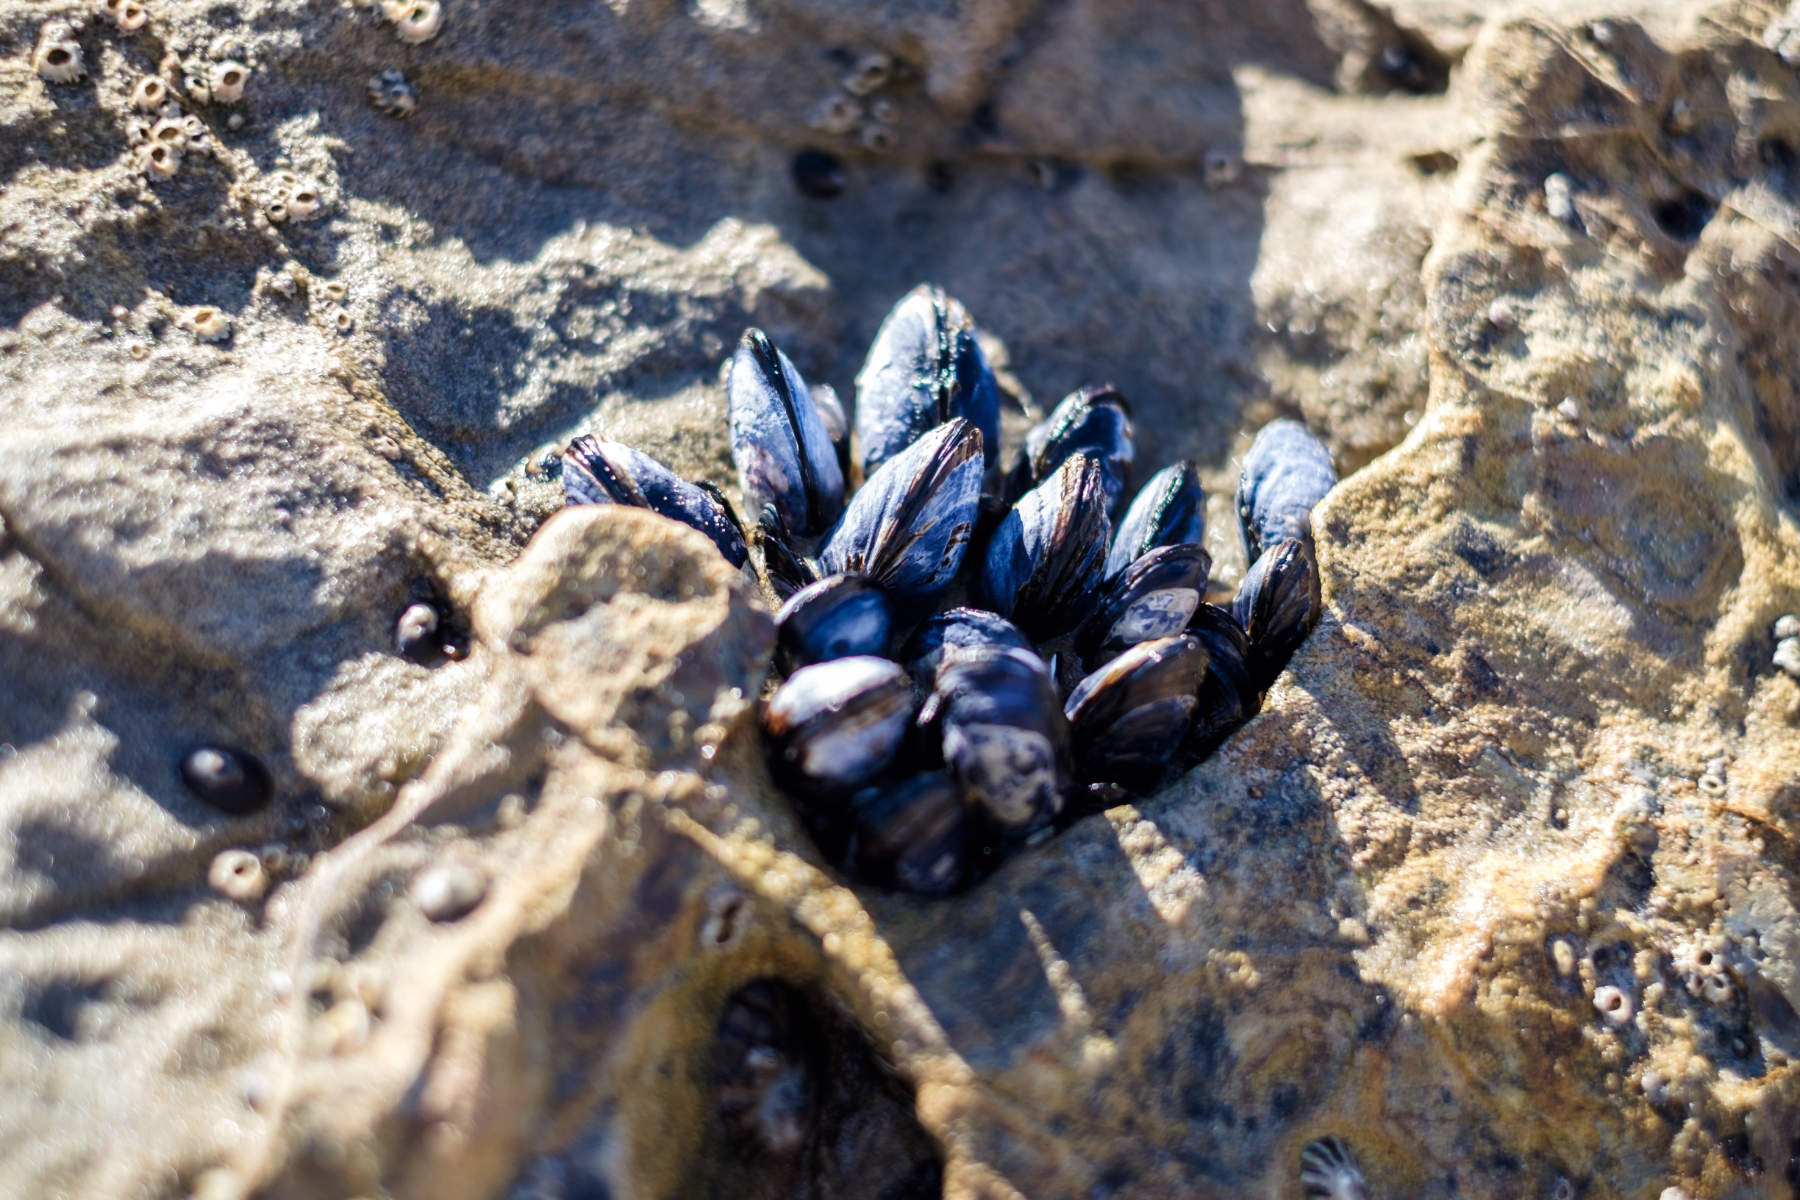 Mussels at Crystal cove beach in Los Angeles California